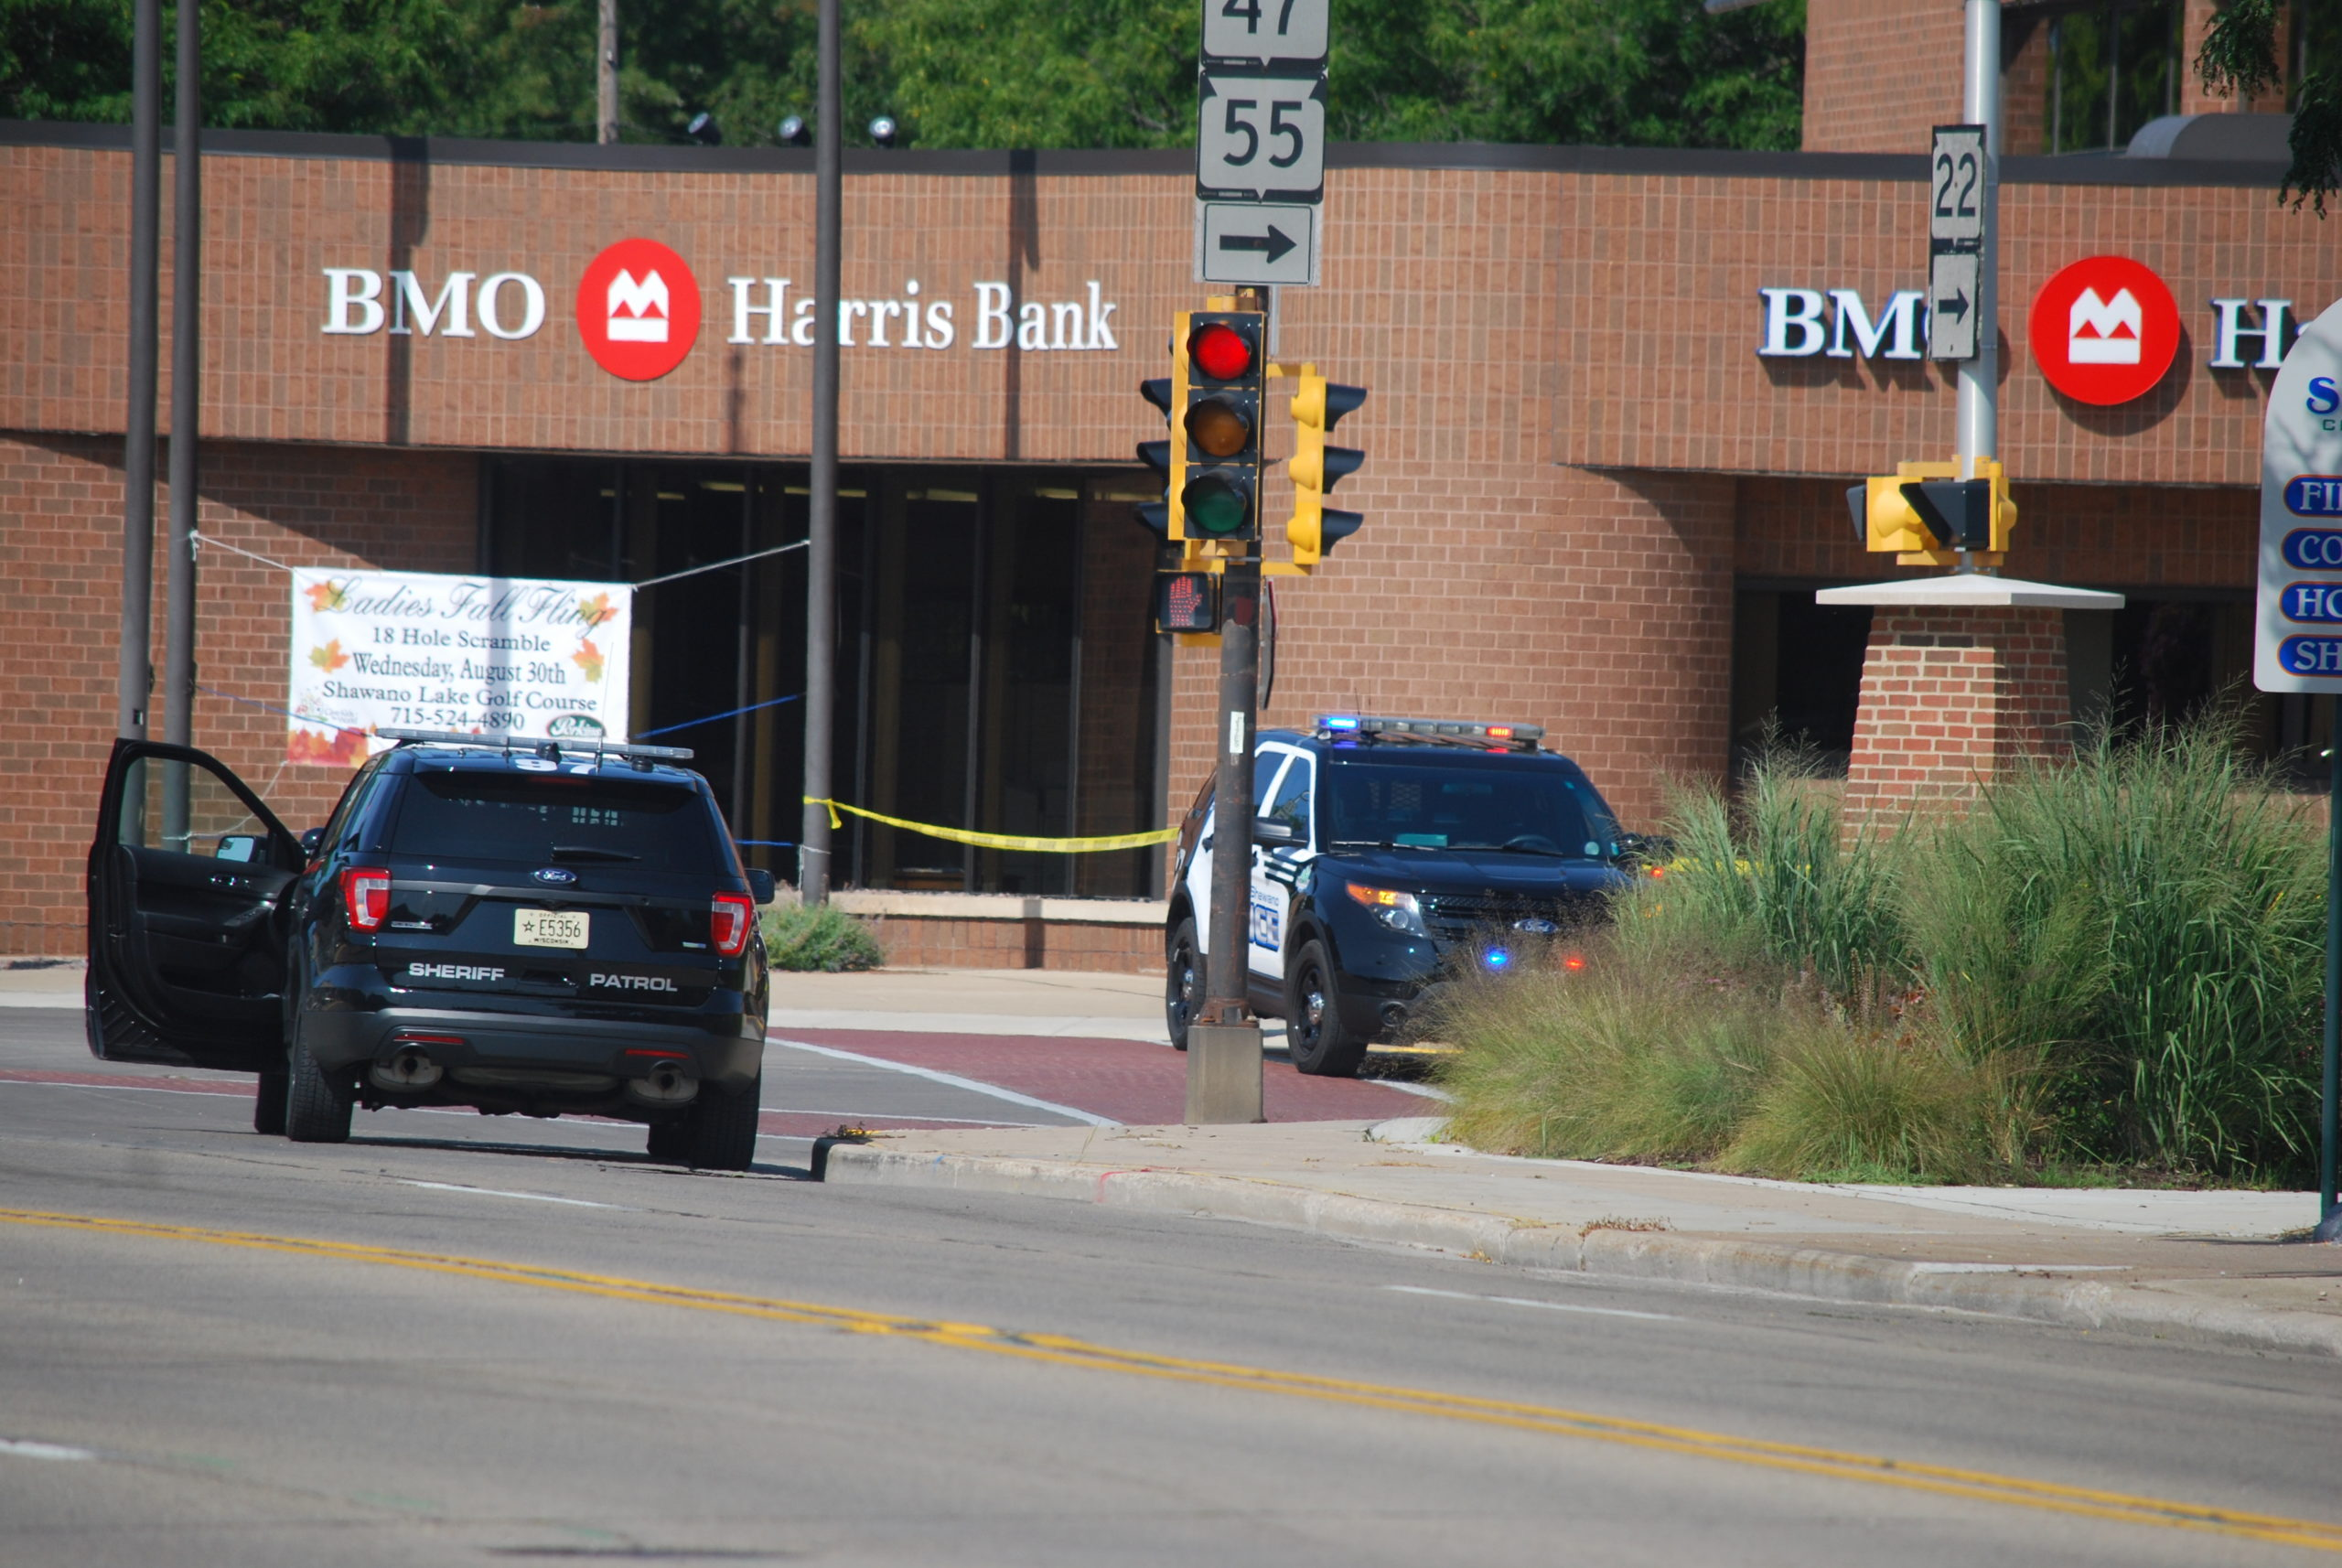 Shawano Police Clear The Scene Of A Suspicious Package At BMO Harris Bank